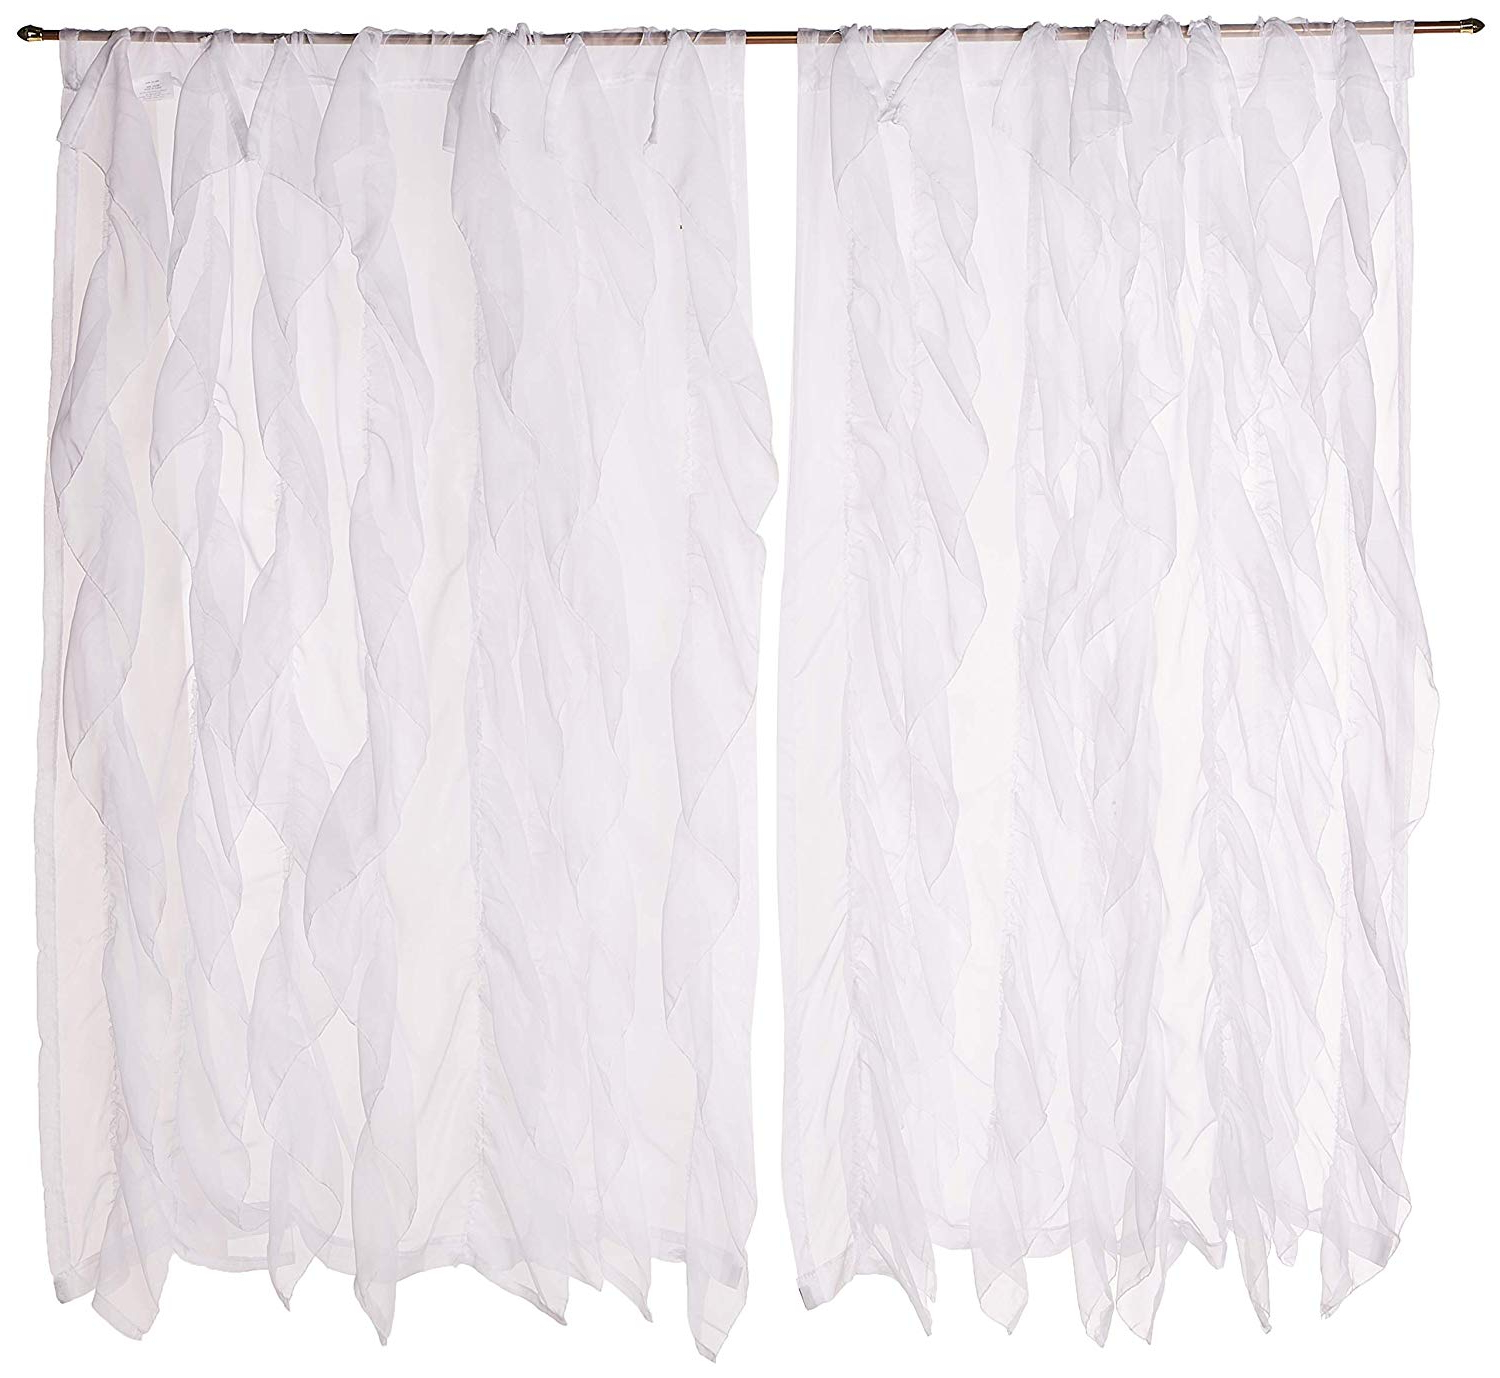 "Most Popular Chic Sheer Voile Vertical Ruffled Window Curtain Tiers Regarding Sweet Home Collection Sheer Voile Vertical Ruffled Window Curtain Panel 50"" X 63"", 63"" X 50"", White, 2 Piece (View 17 of 20)"